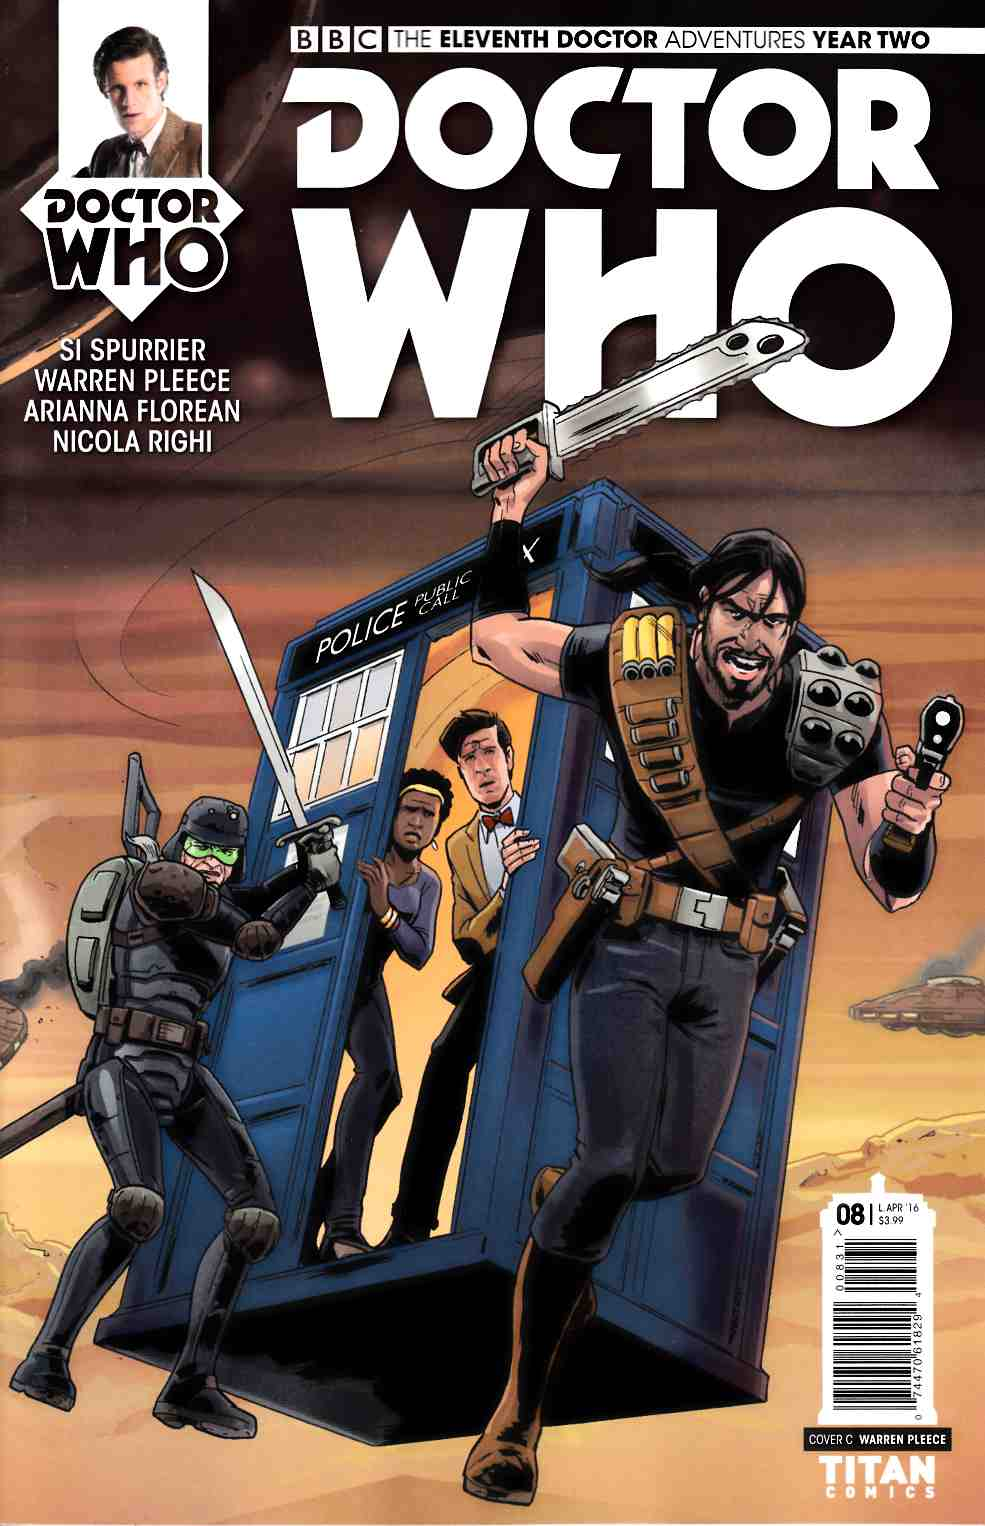 Doctor Who 11th Doctor Year 2 #8 Cover C [Titan Comic] THUMBNAIL